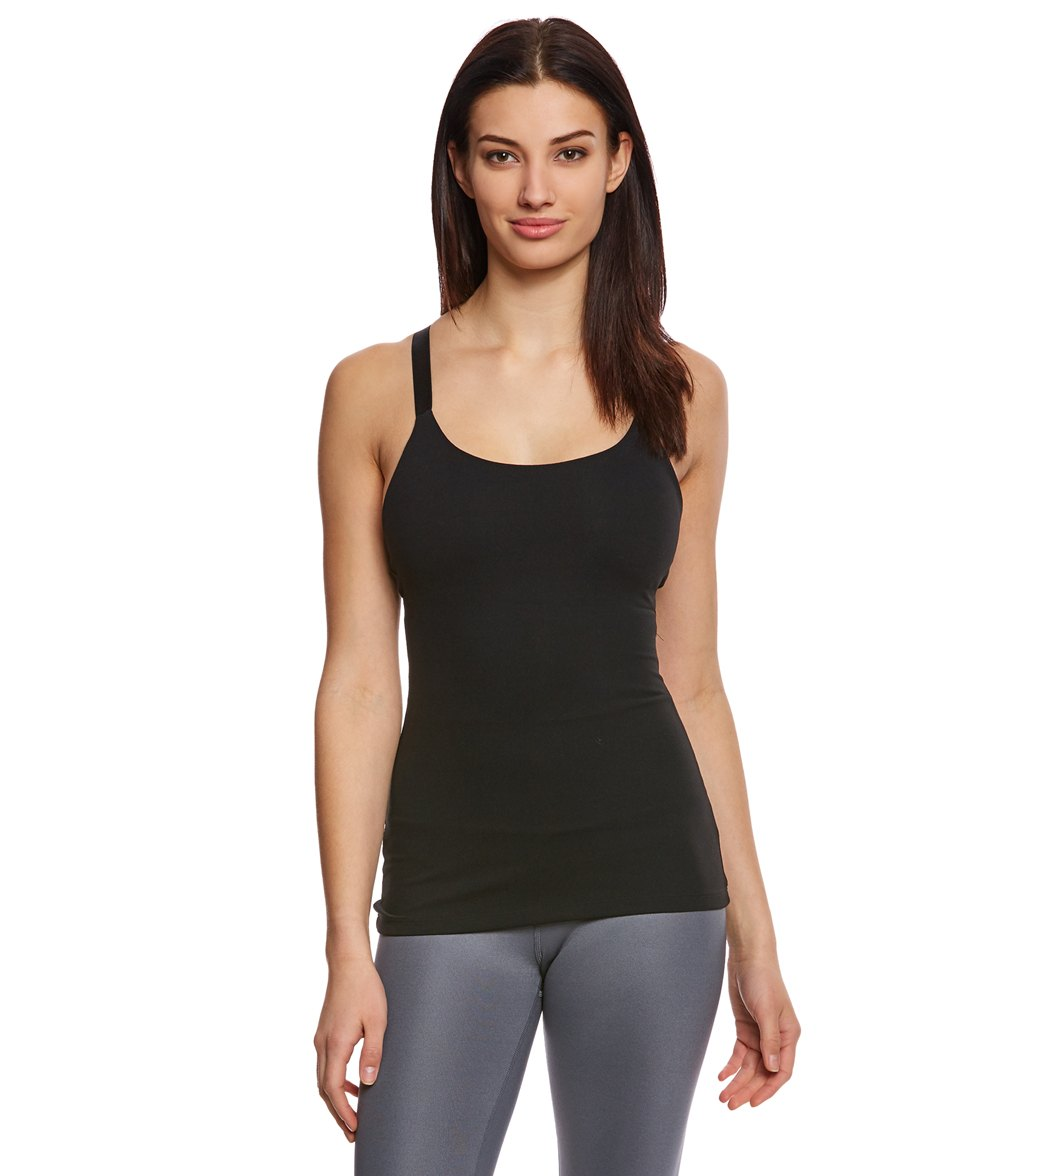 f25803f1ea75d Beyond Yoga Live Free Or Tie Hard Yoga Support Tank at YogaOutlet ...